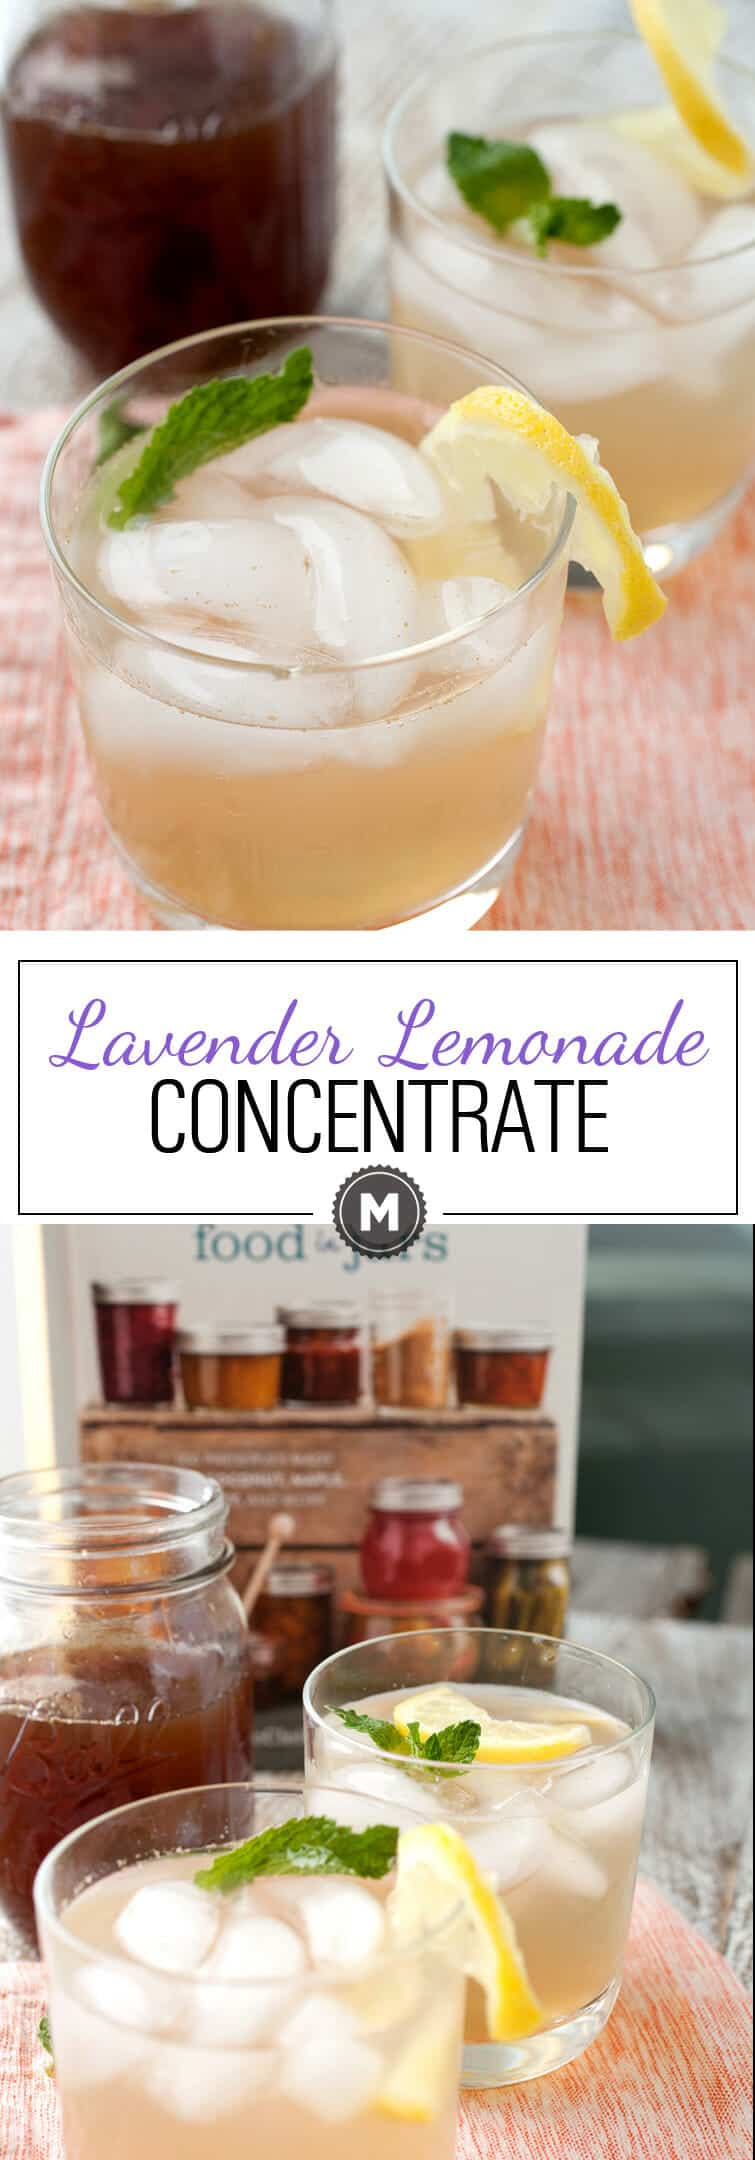 Lavender Lemonade Concentrate: A tangy and just-sweet-enough concentrate that's great for a glass of lemonade or adult beverage. You can can the concentrate, but I always drink it too fast for it to be a concern! From the cookbook Naturally Sweet Food in jars!   macheesmo.com